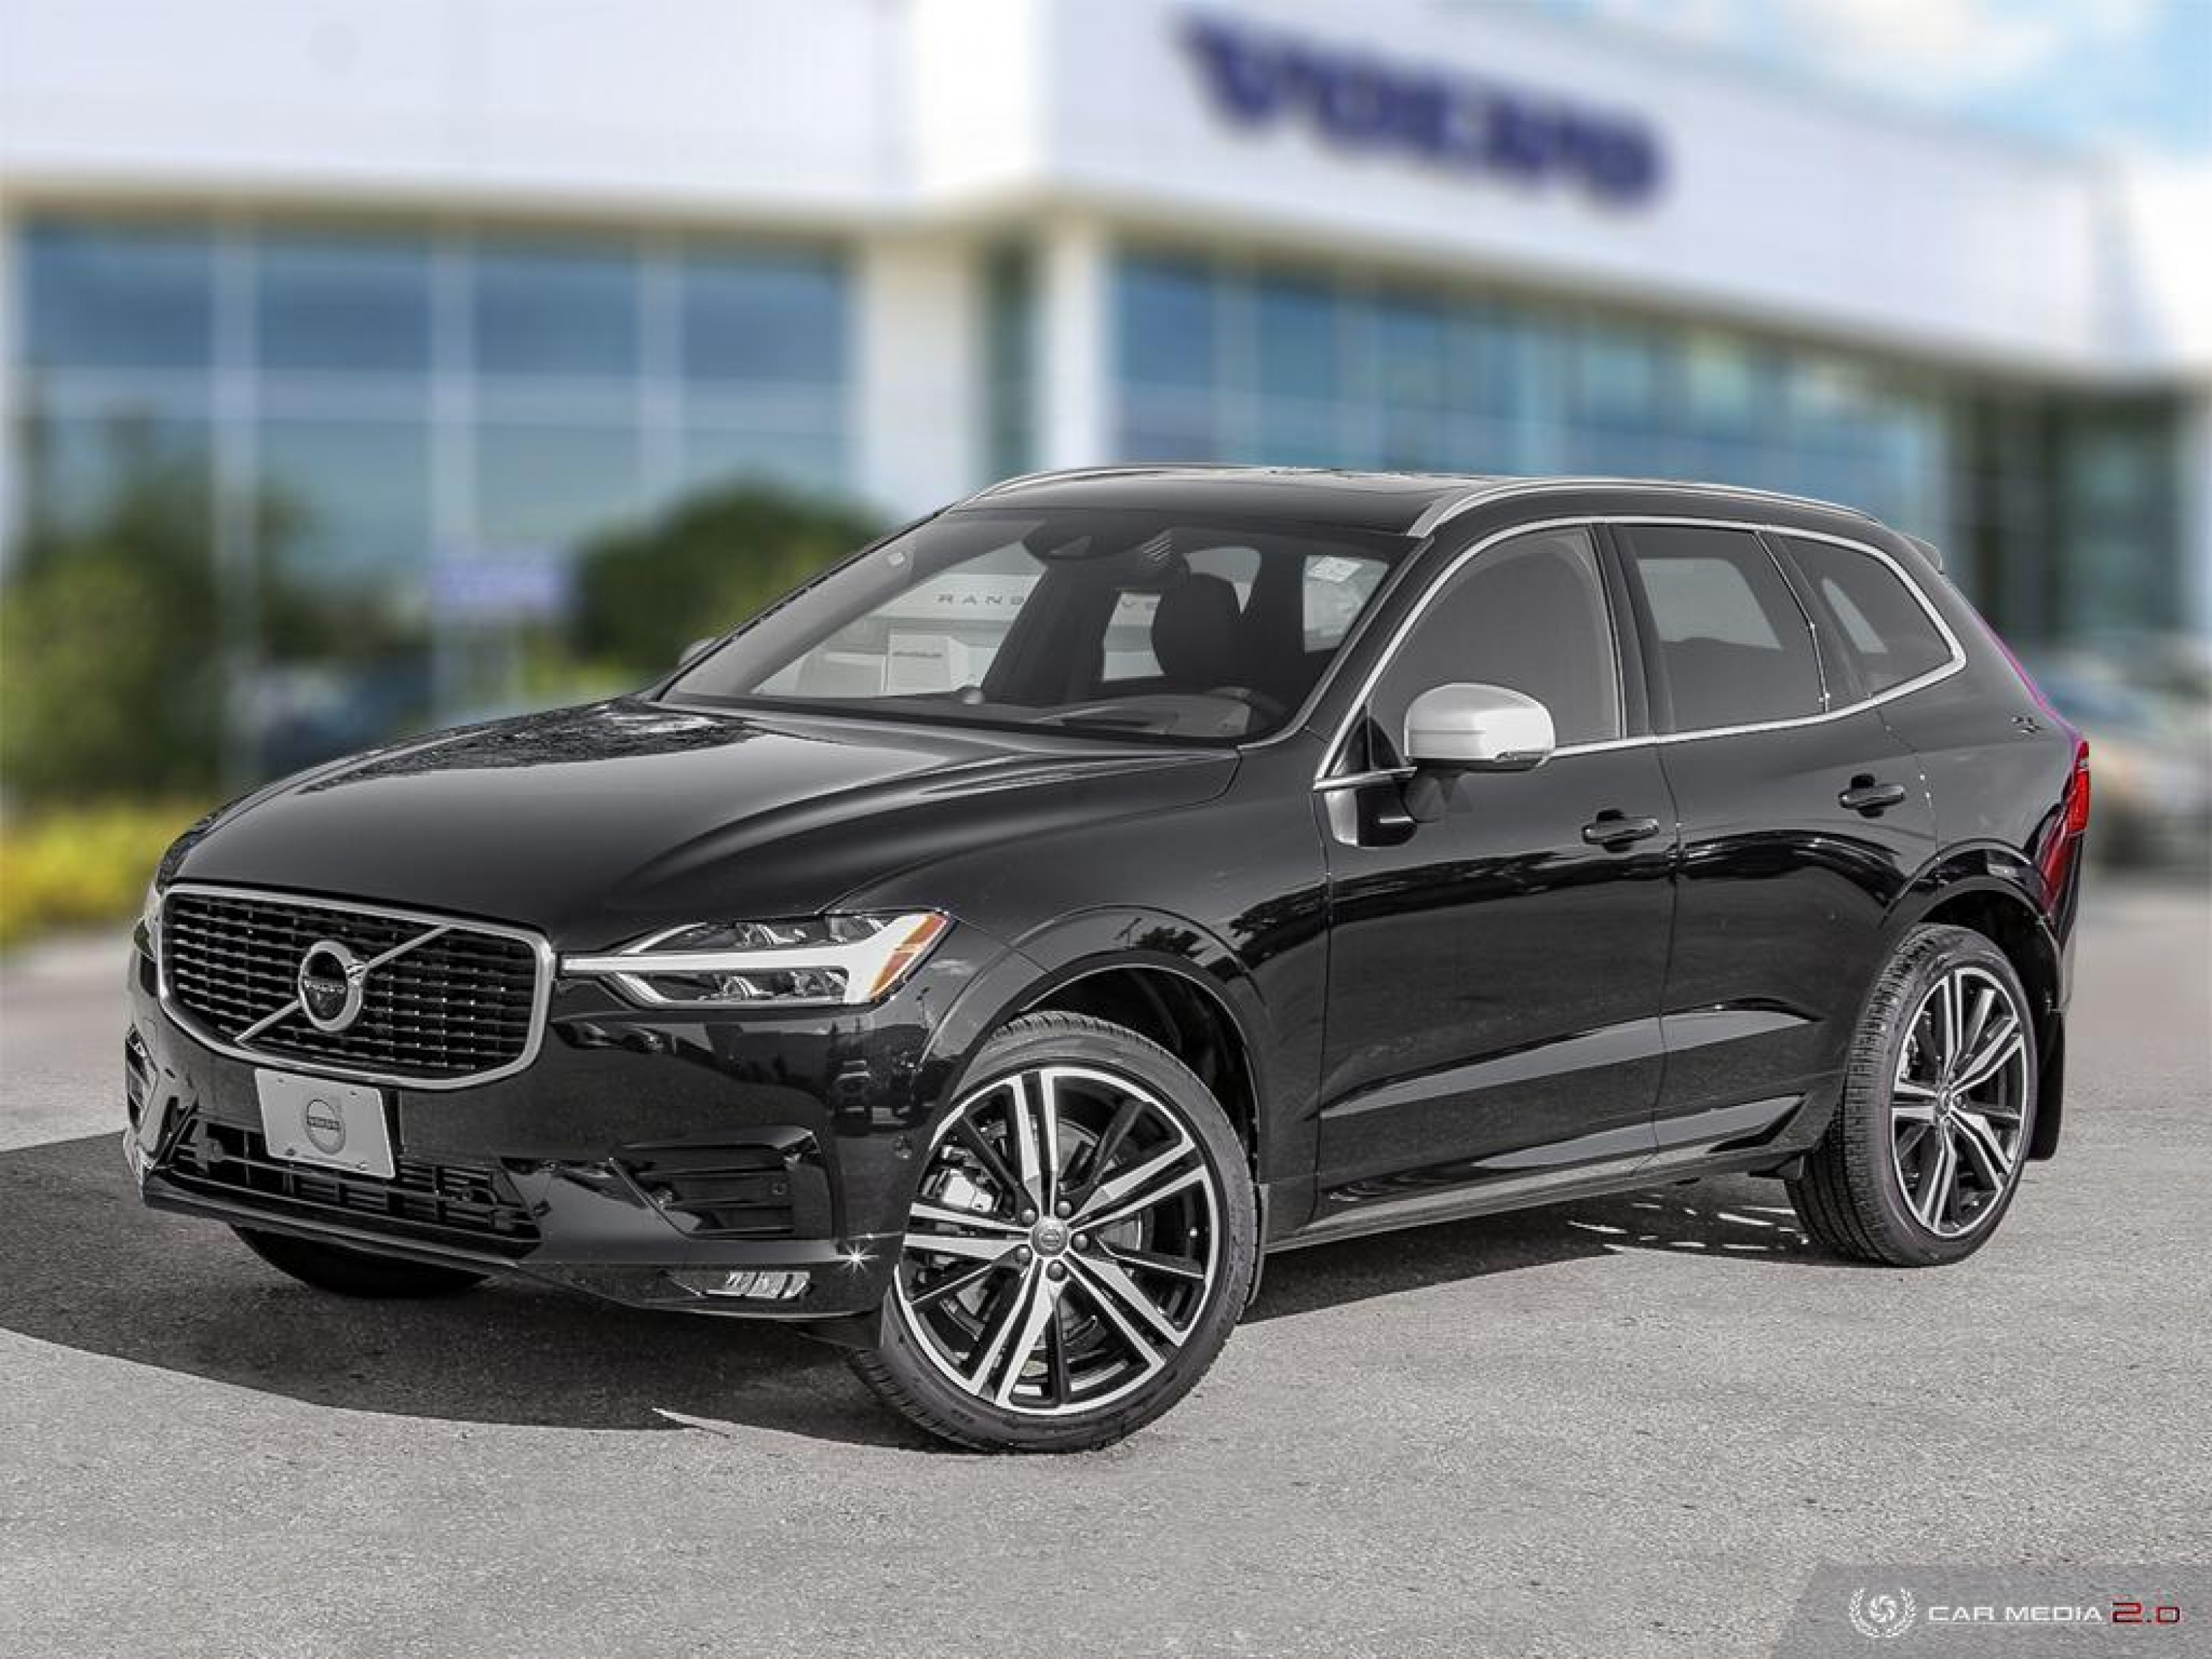 NEW 2019 VOLVO XC60 R-DESIGN AWD